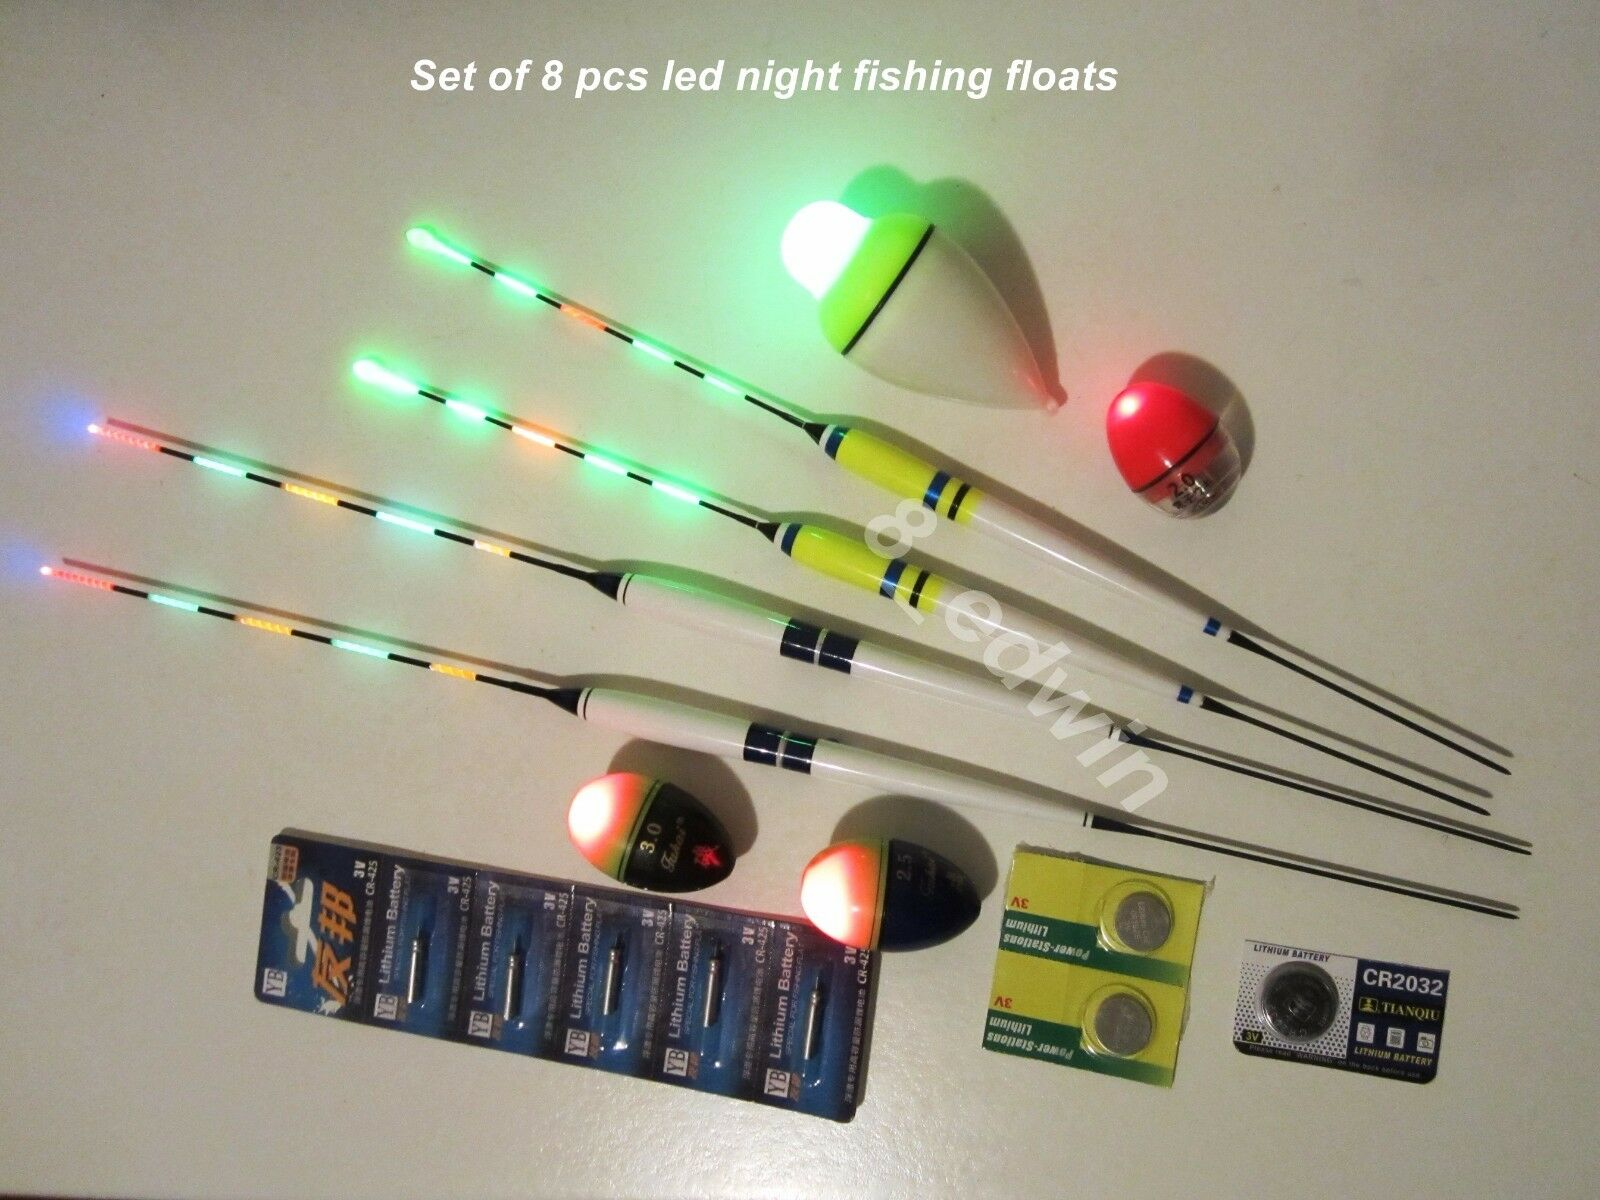 Anglers' Favor 8 Pcs LED Luminous Ocean Night Multi Fishing Float +11 Batteries